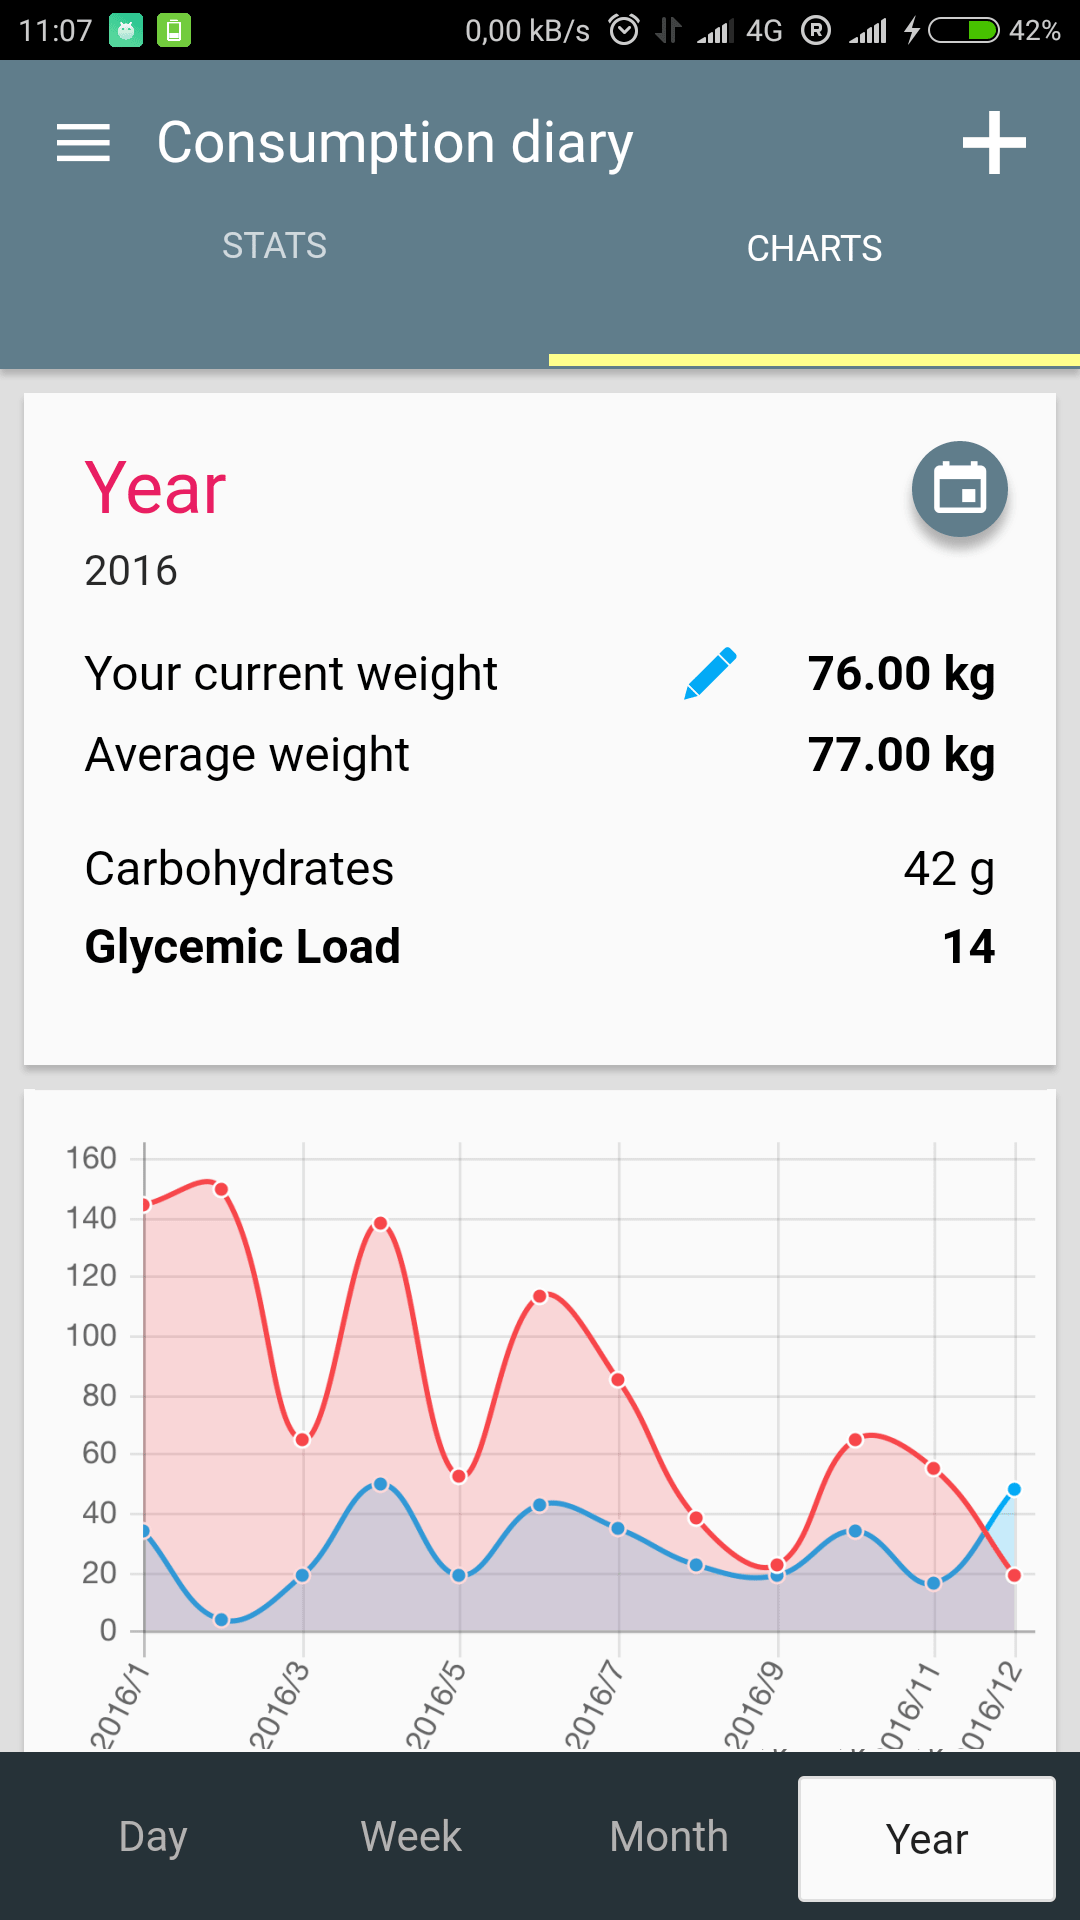 Glycemic Load and weight tracker